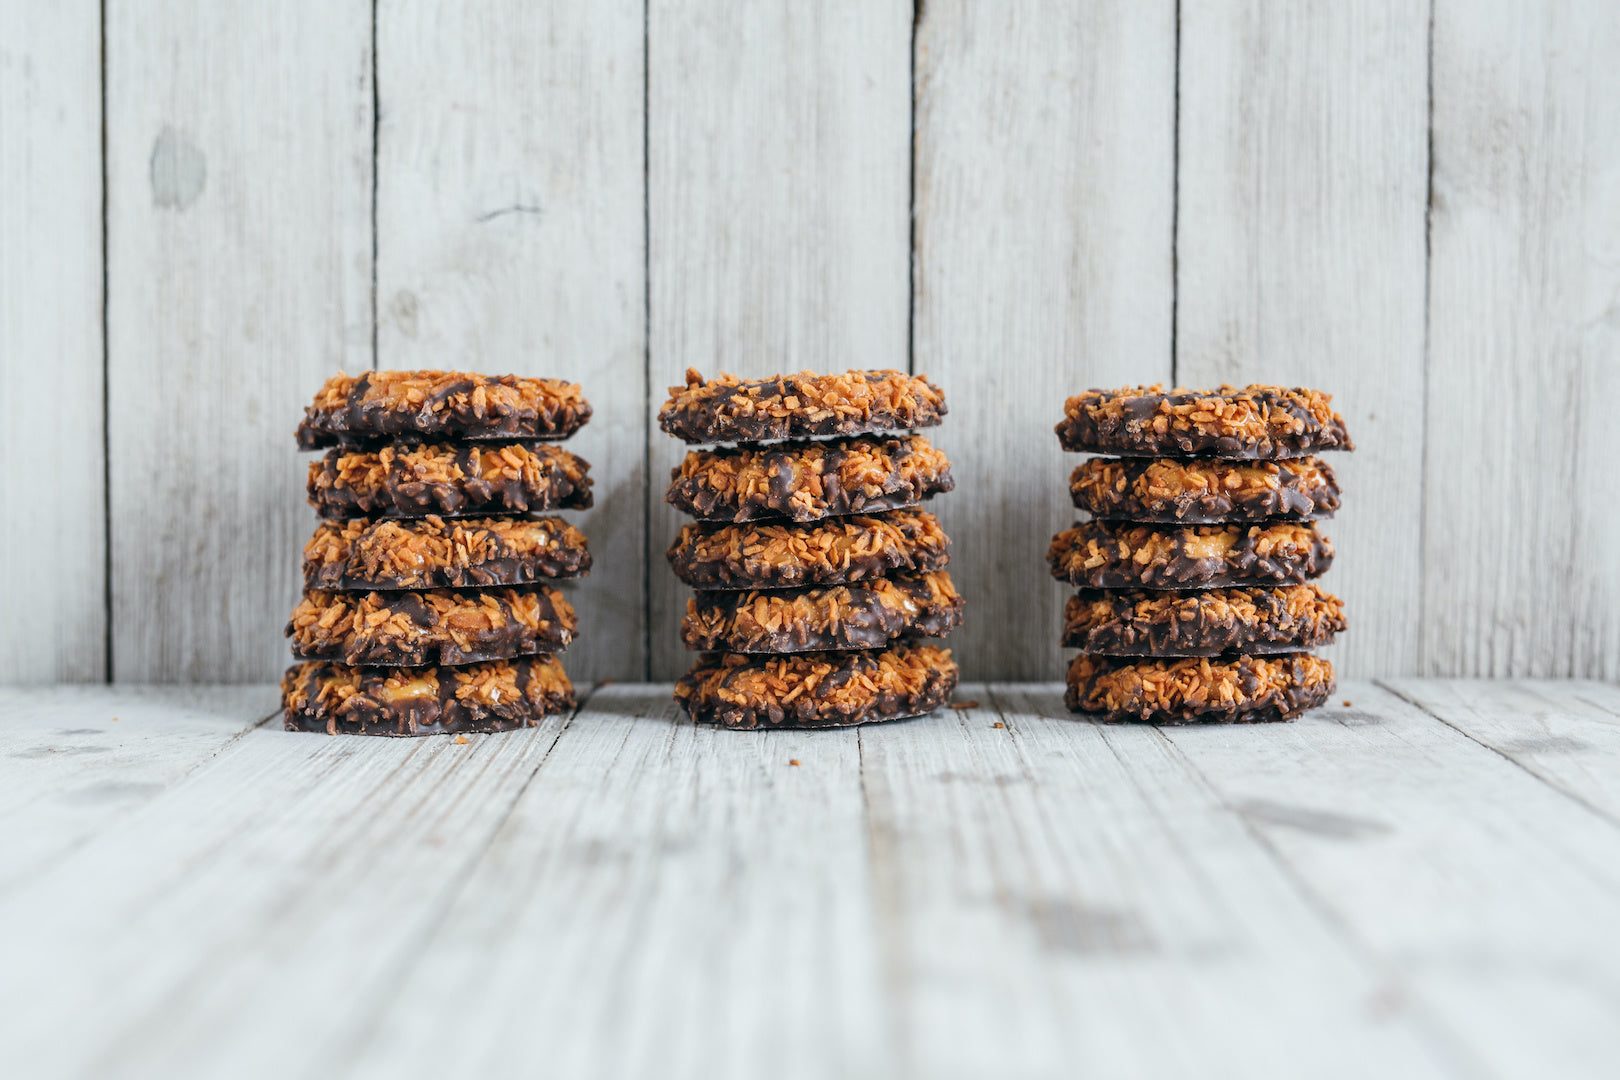 Image of father's day desserts option 3: no-bake girl scout cookies.